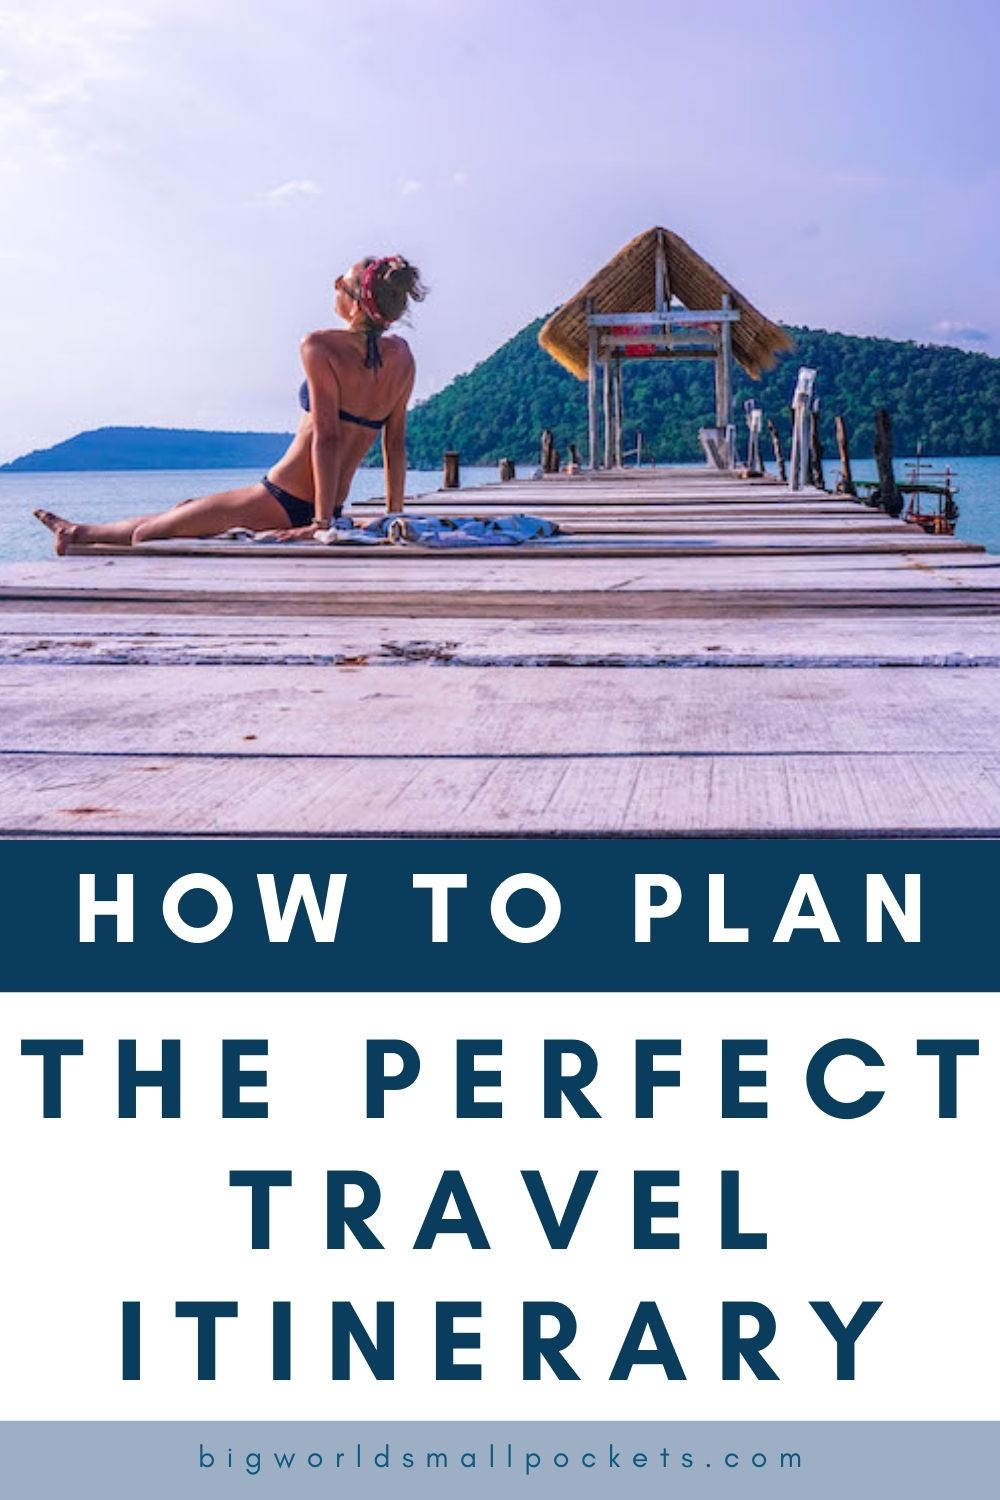 How to Your Perfect Travel Itinerary